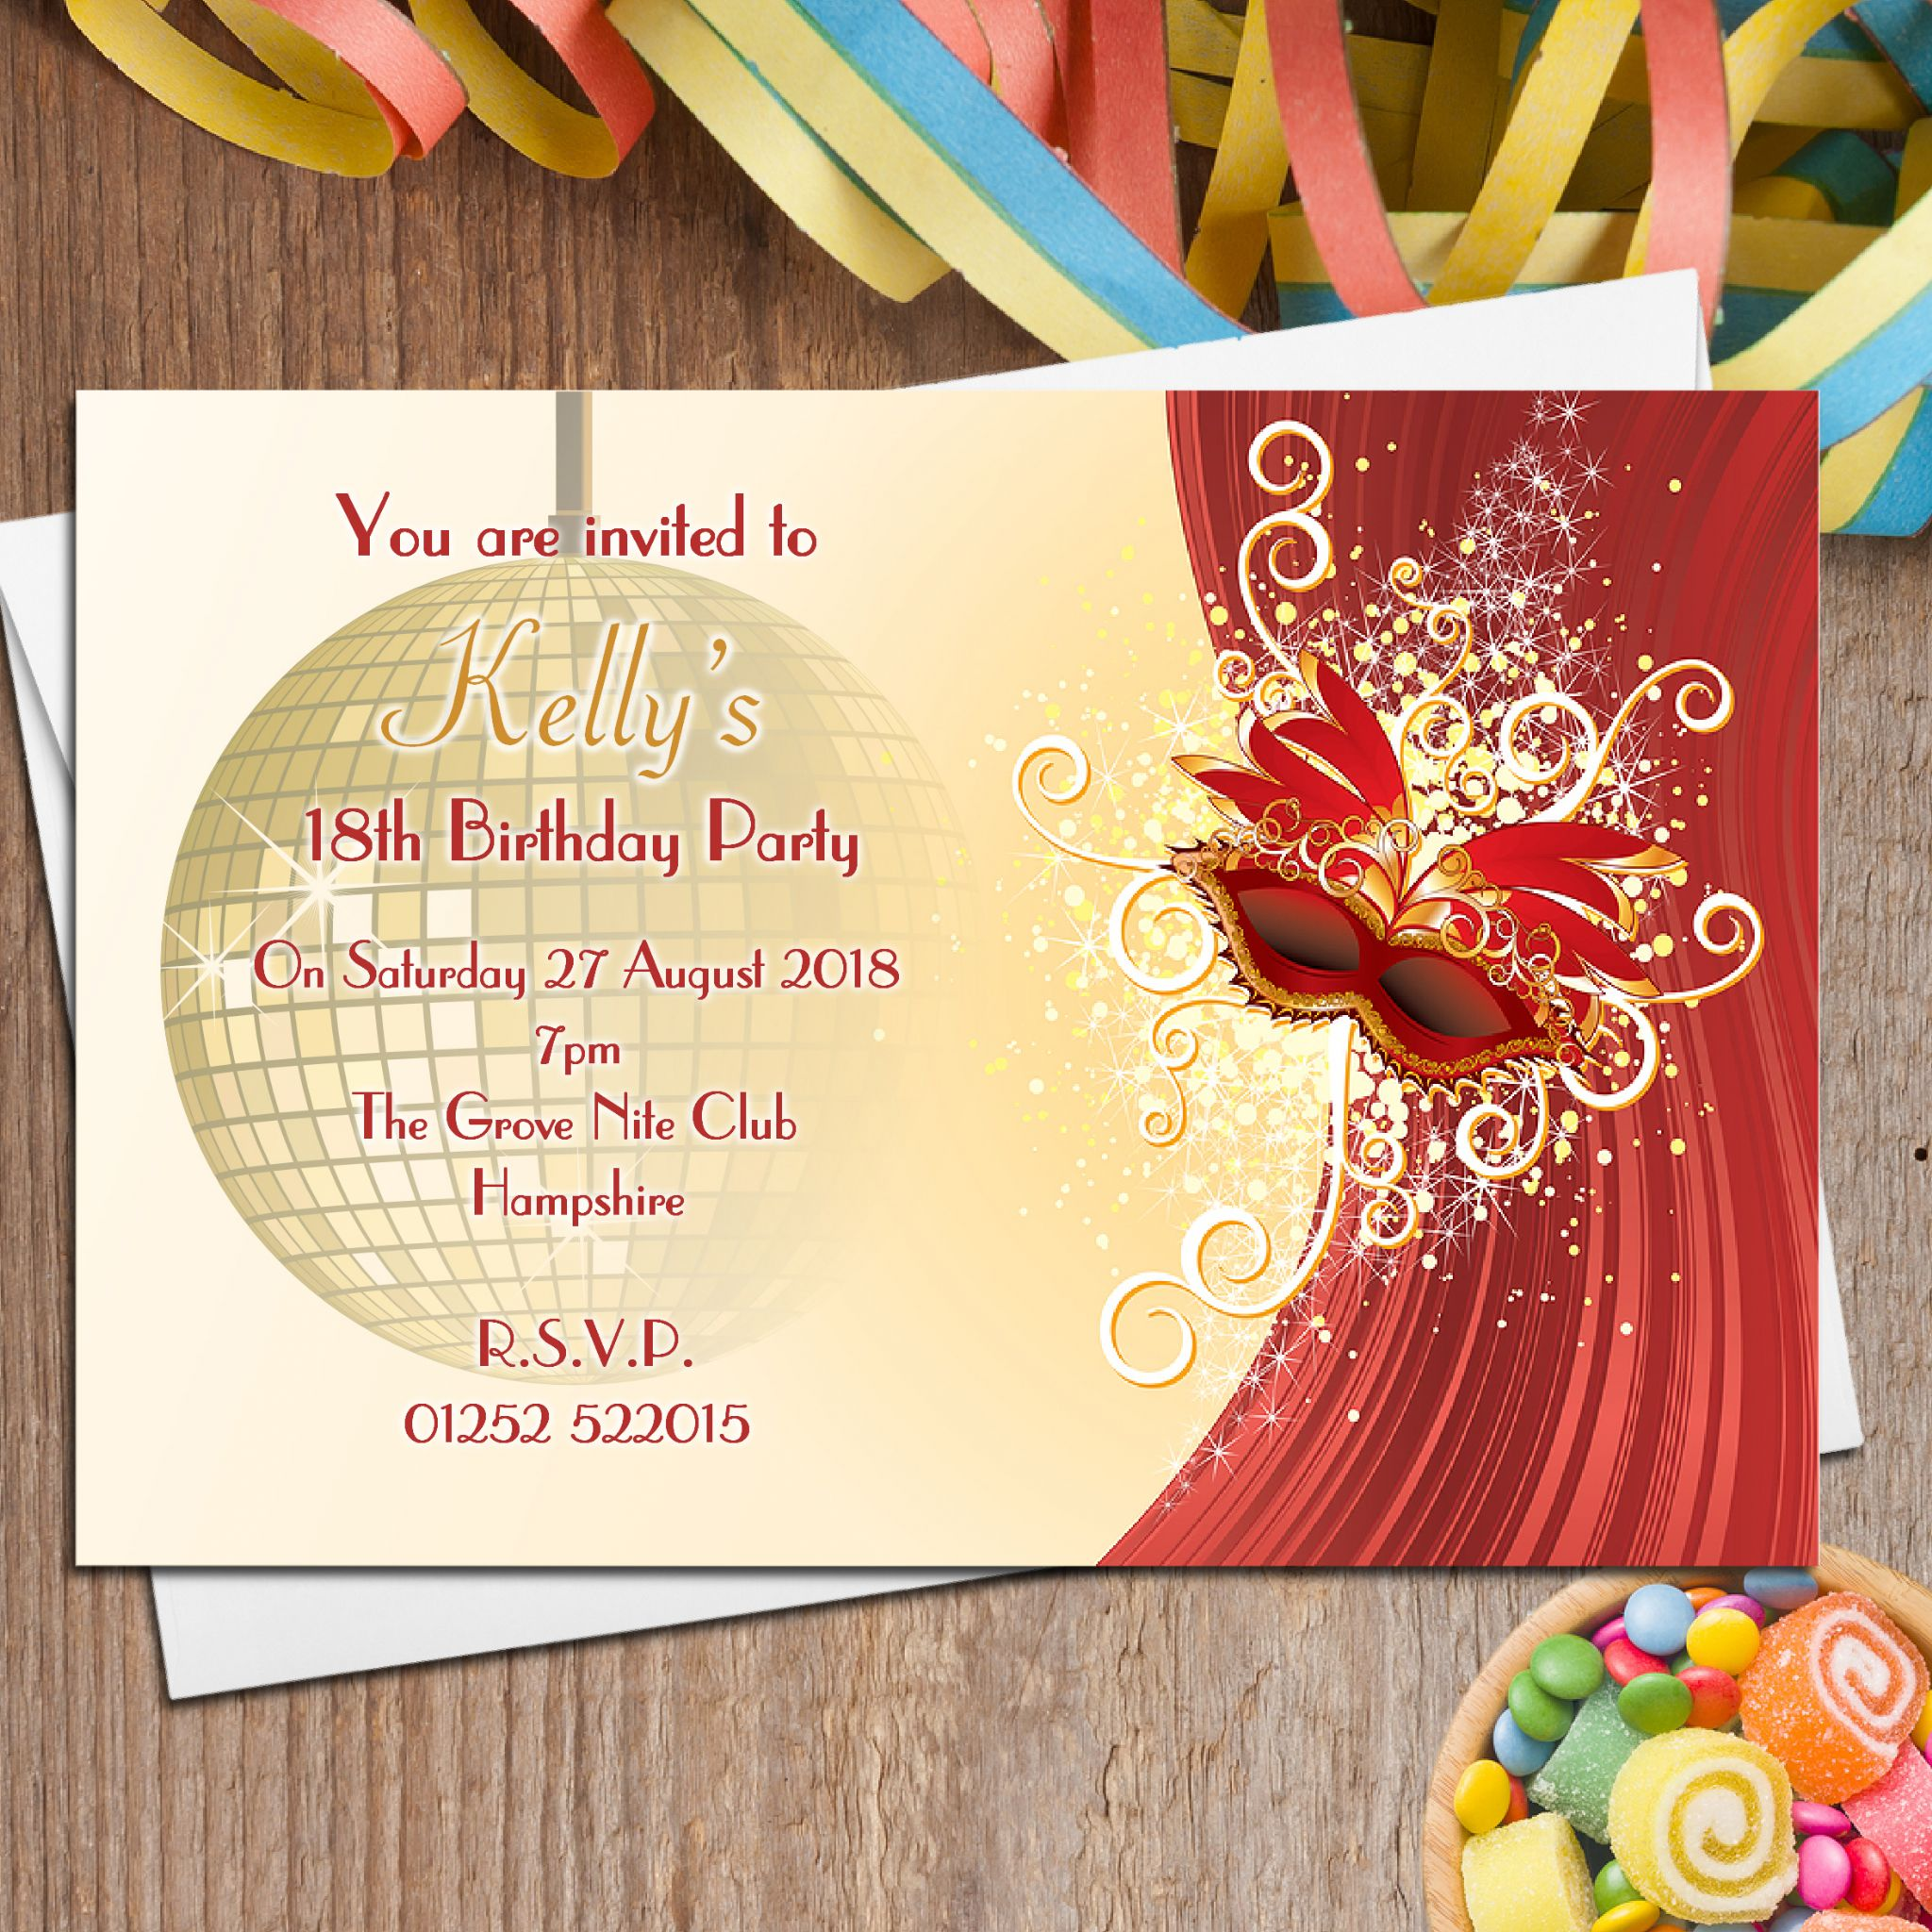 customized party invitations : ukrobstep, Party invitations